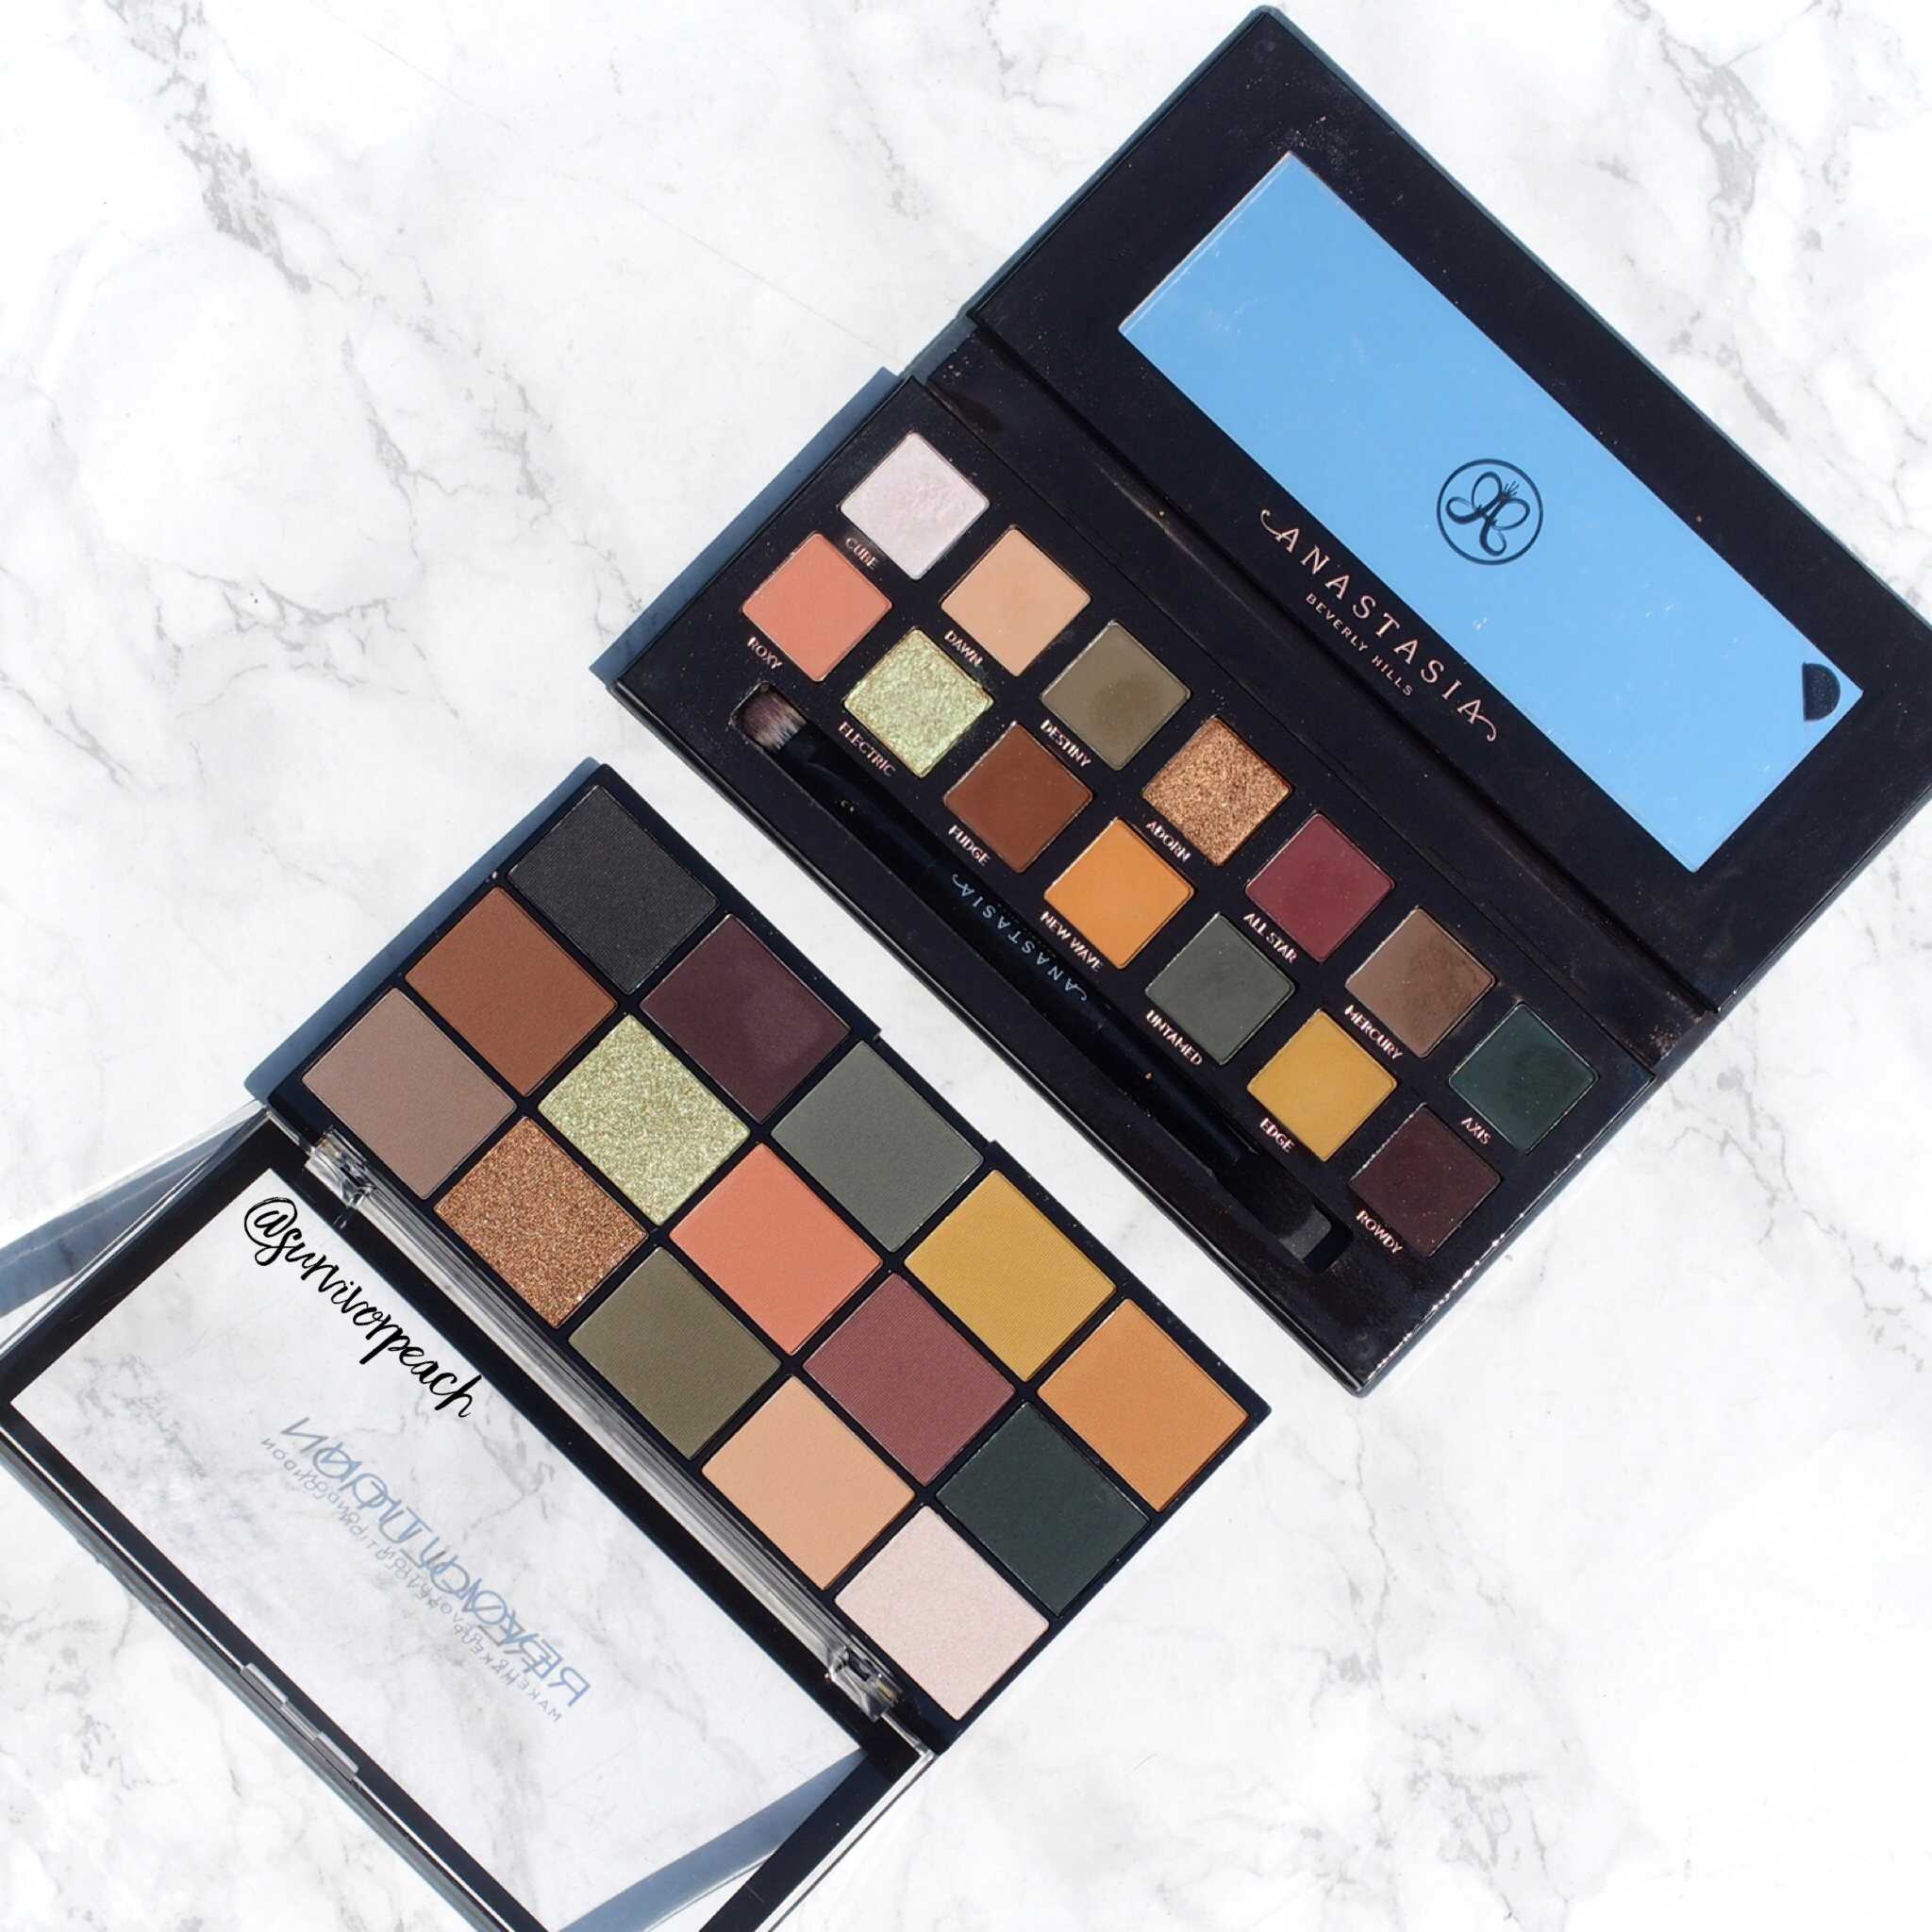 Revolution Re-loaded palette Iconic Division & Anastasia Subculture palette